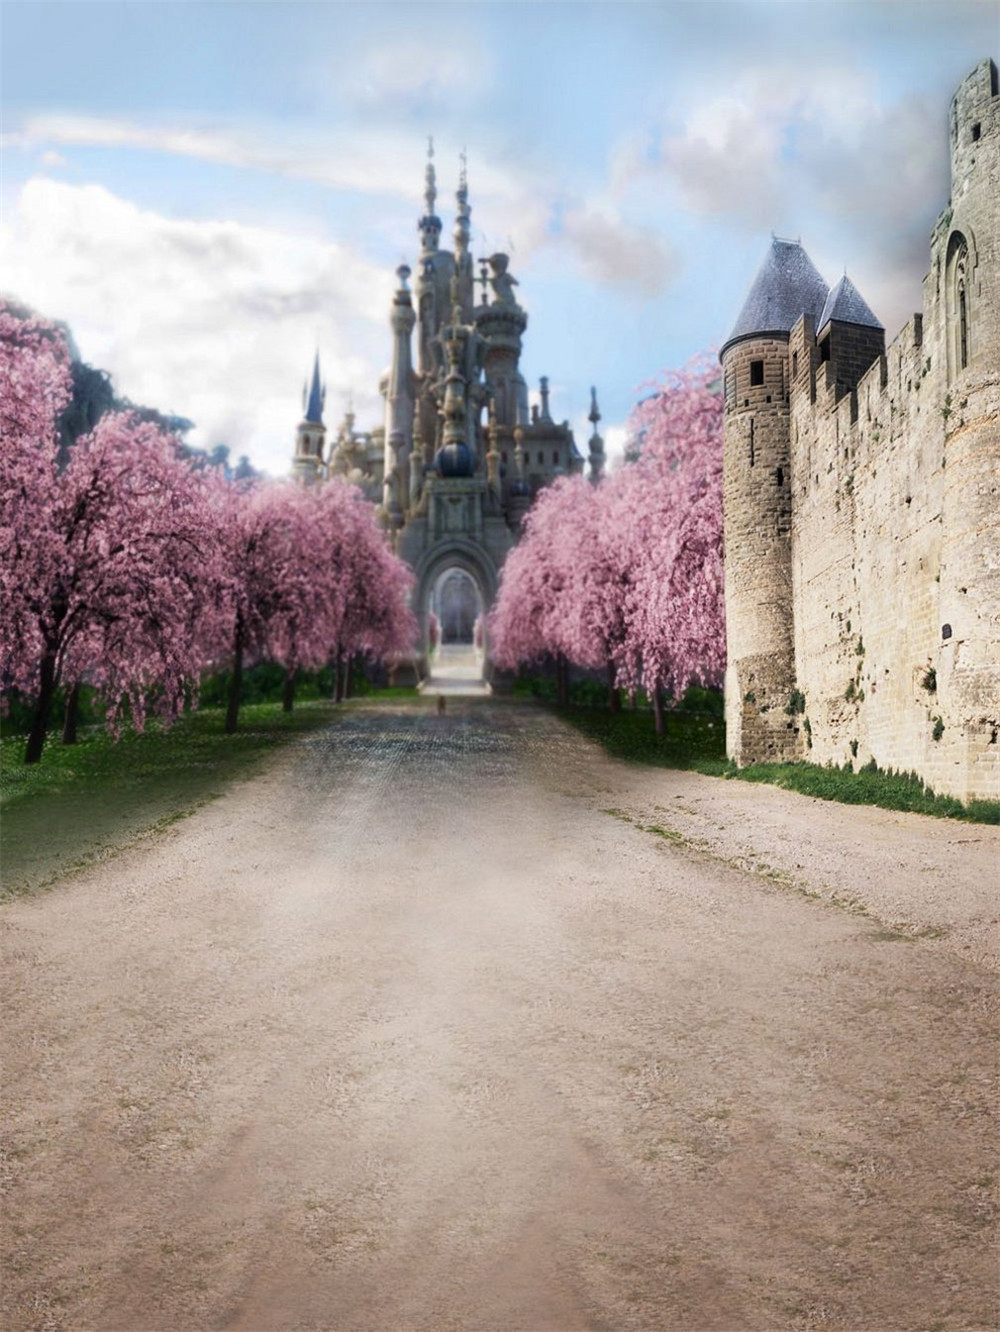 Vintage Castle Photography Backdrop Outdoor Scenic Spring Pink Cherry Blossom Tree Digital Photo Shooting Background for Studio backdrop baby 6 5x10ft 200x300cm prince castle vintage castle vinyl backdrop